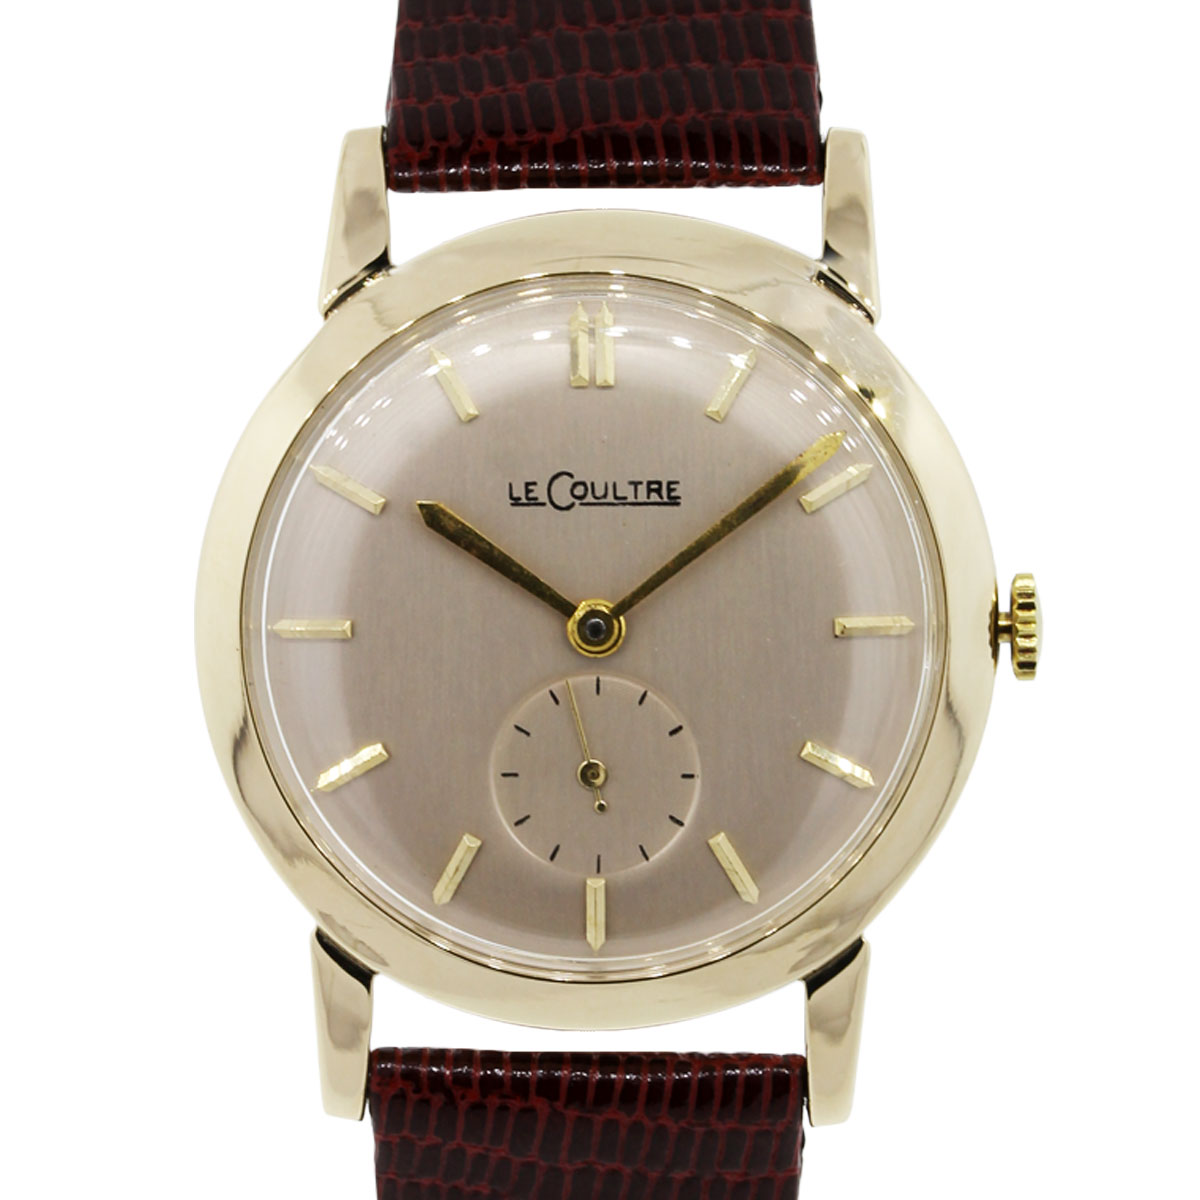 LeCoultre 14k Yellow Gold On Leather Strap Watch